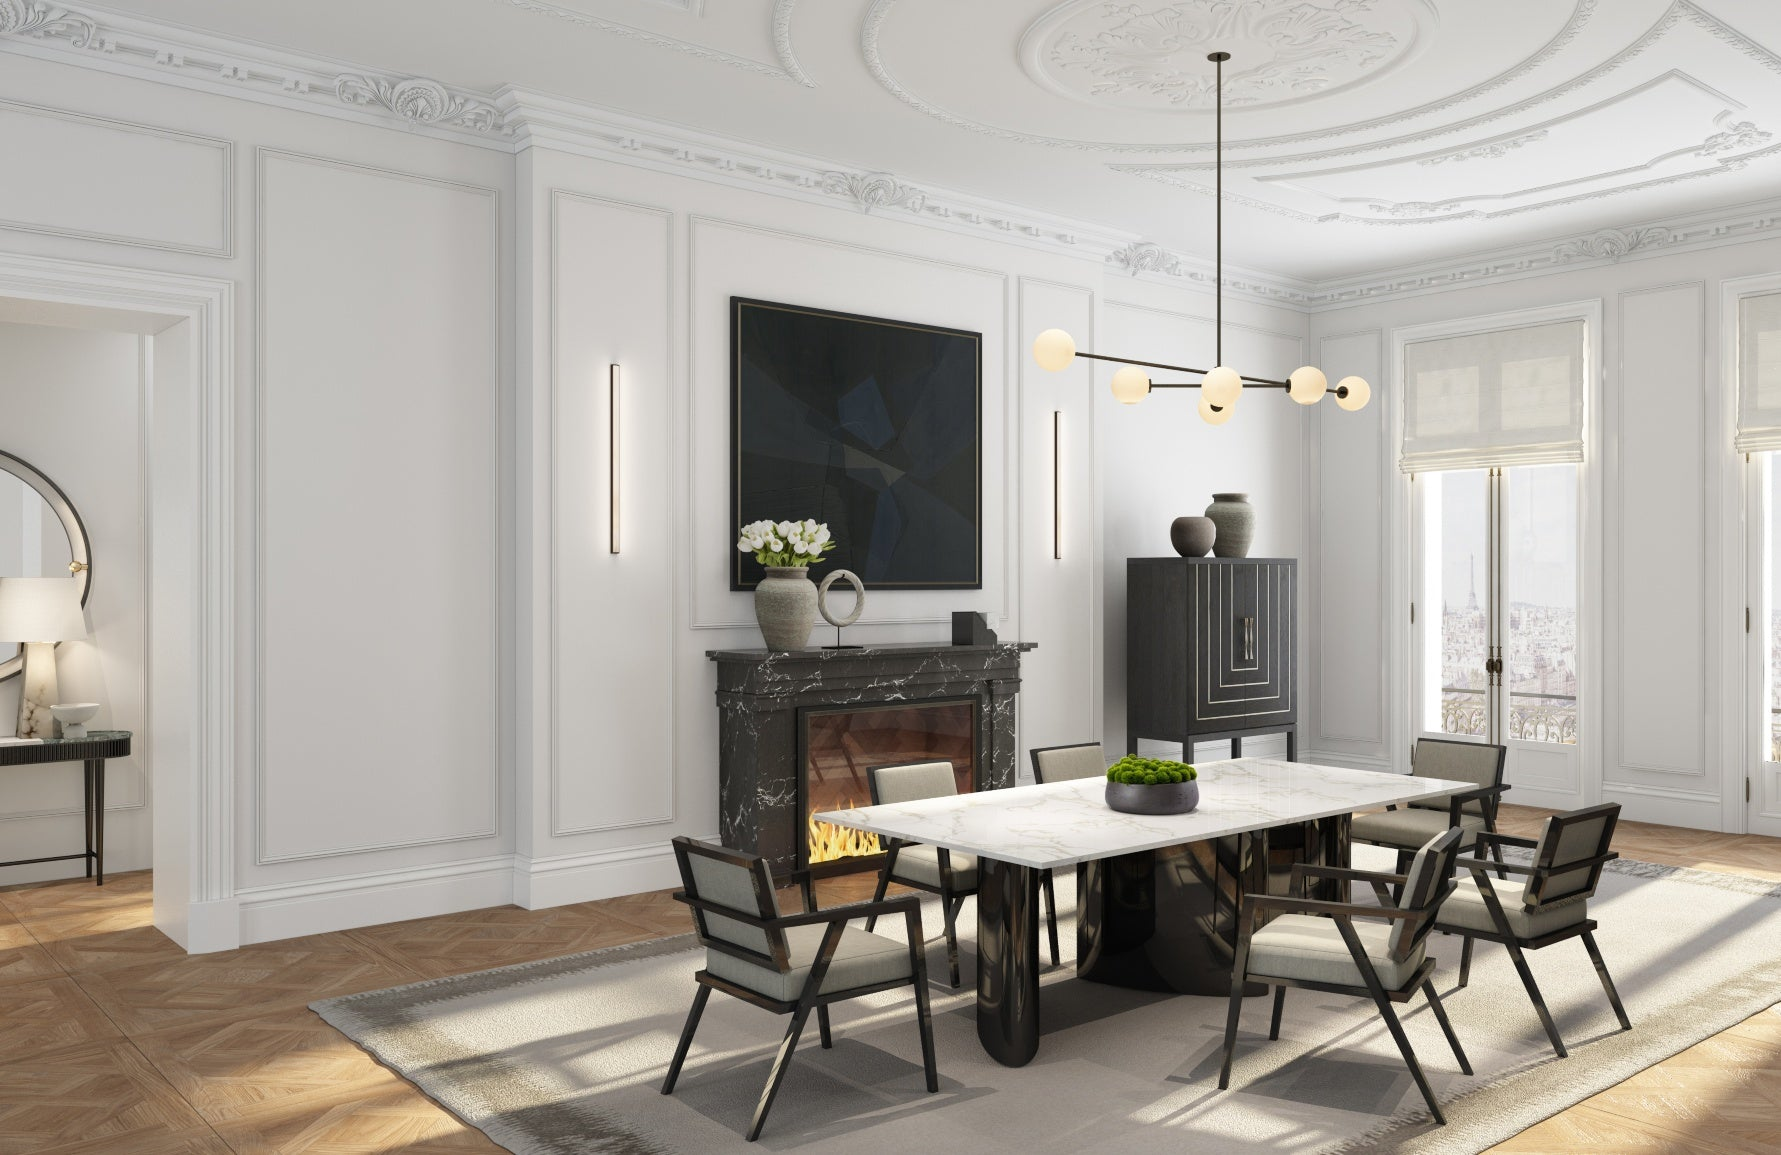 The Paris Lookbook | Modern Dining Room | Shop now at LuxDeco.com